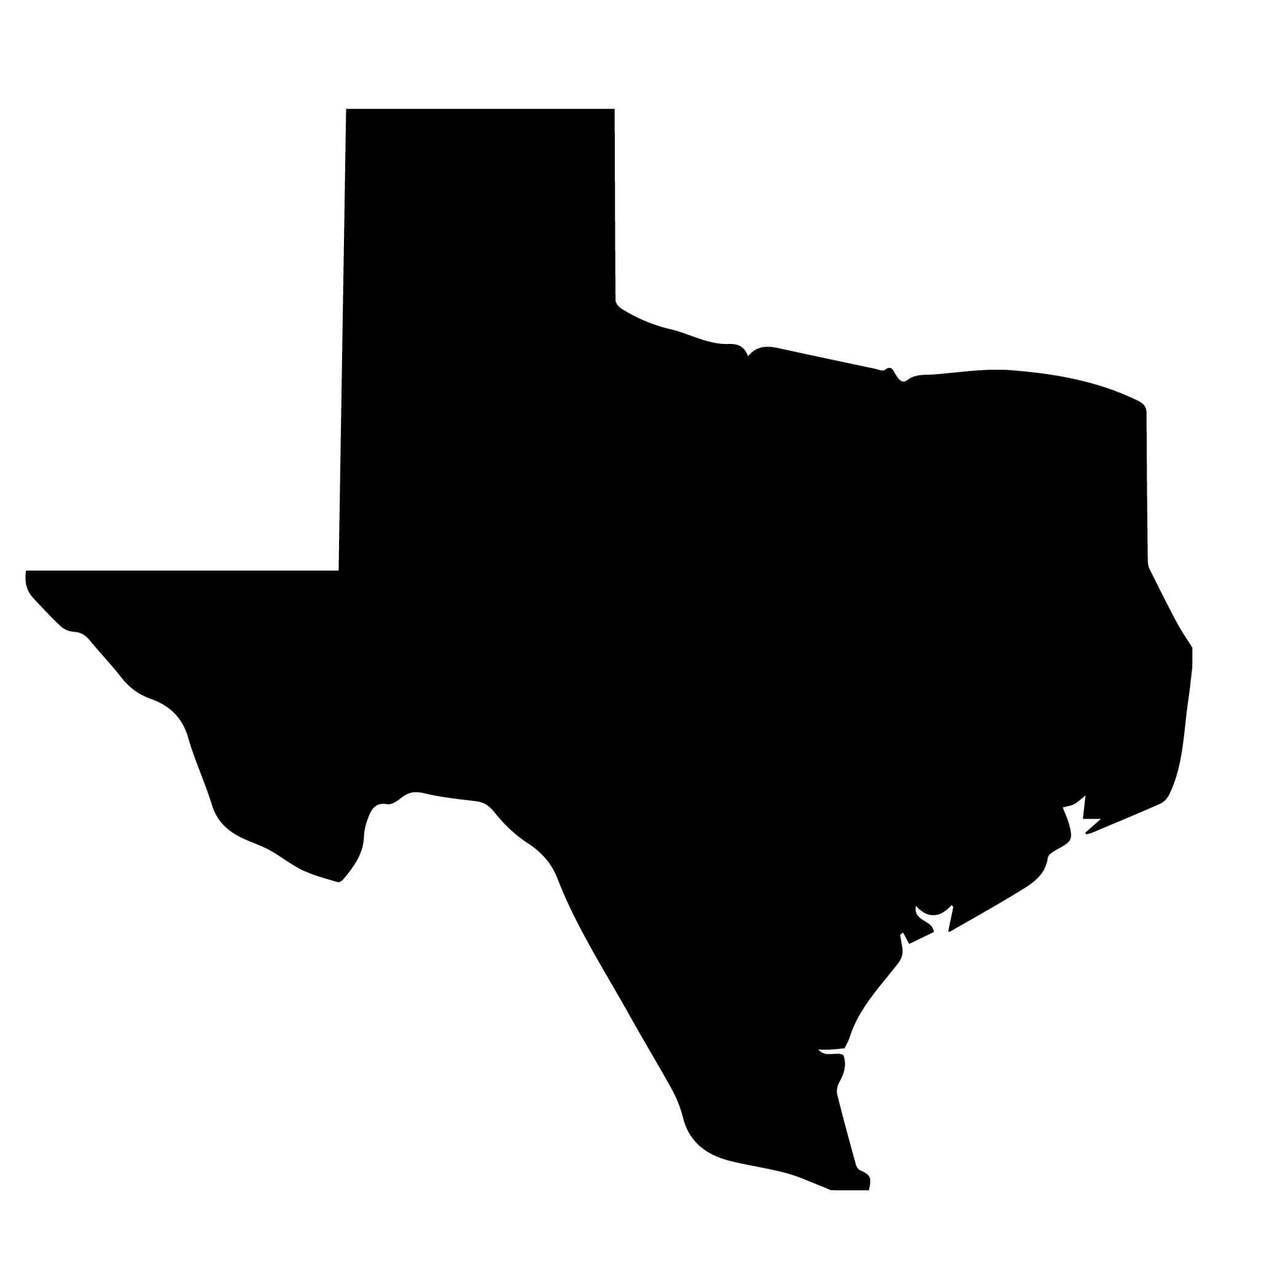 texas outline svg #562, Download drawings